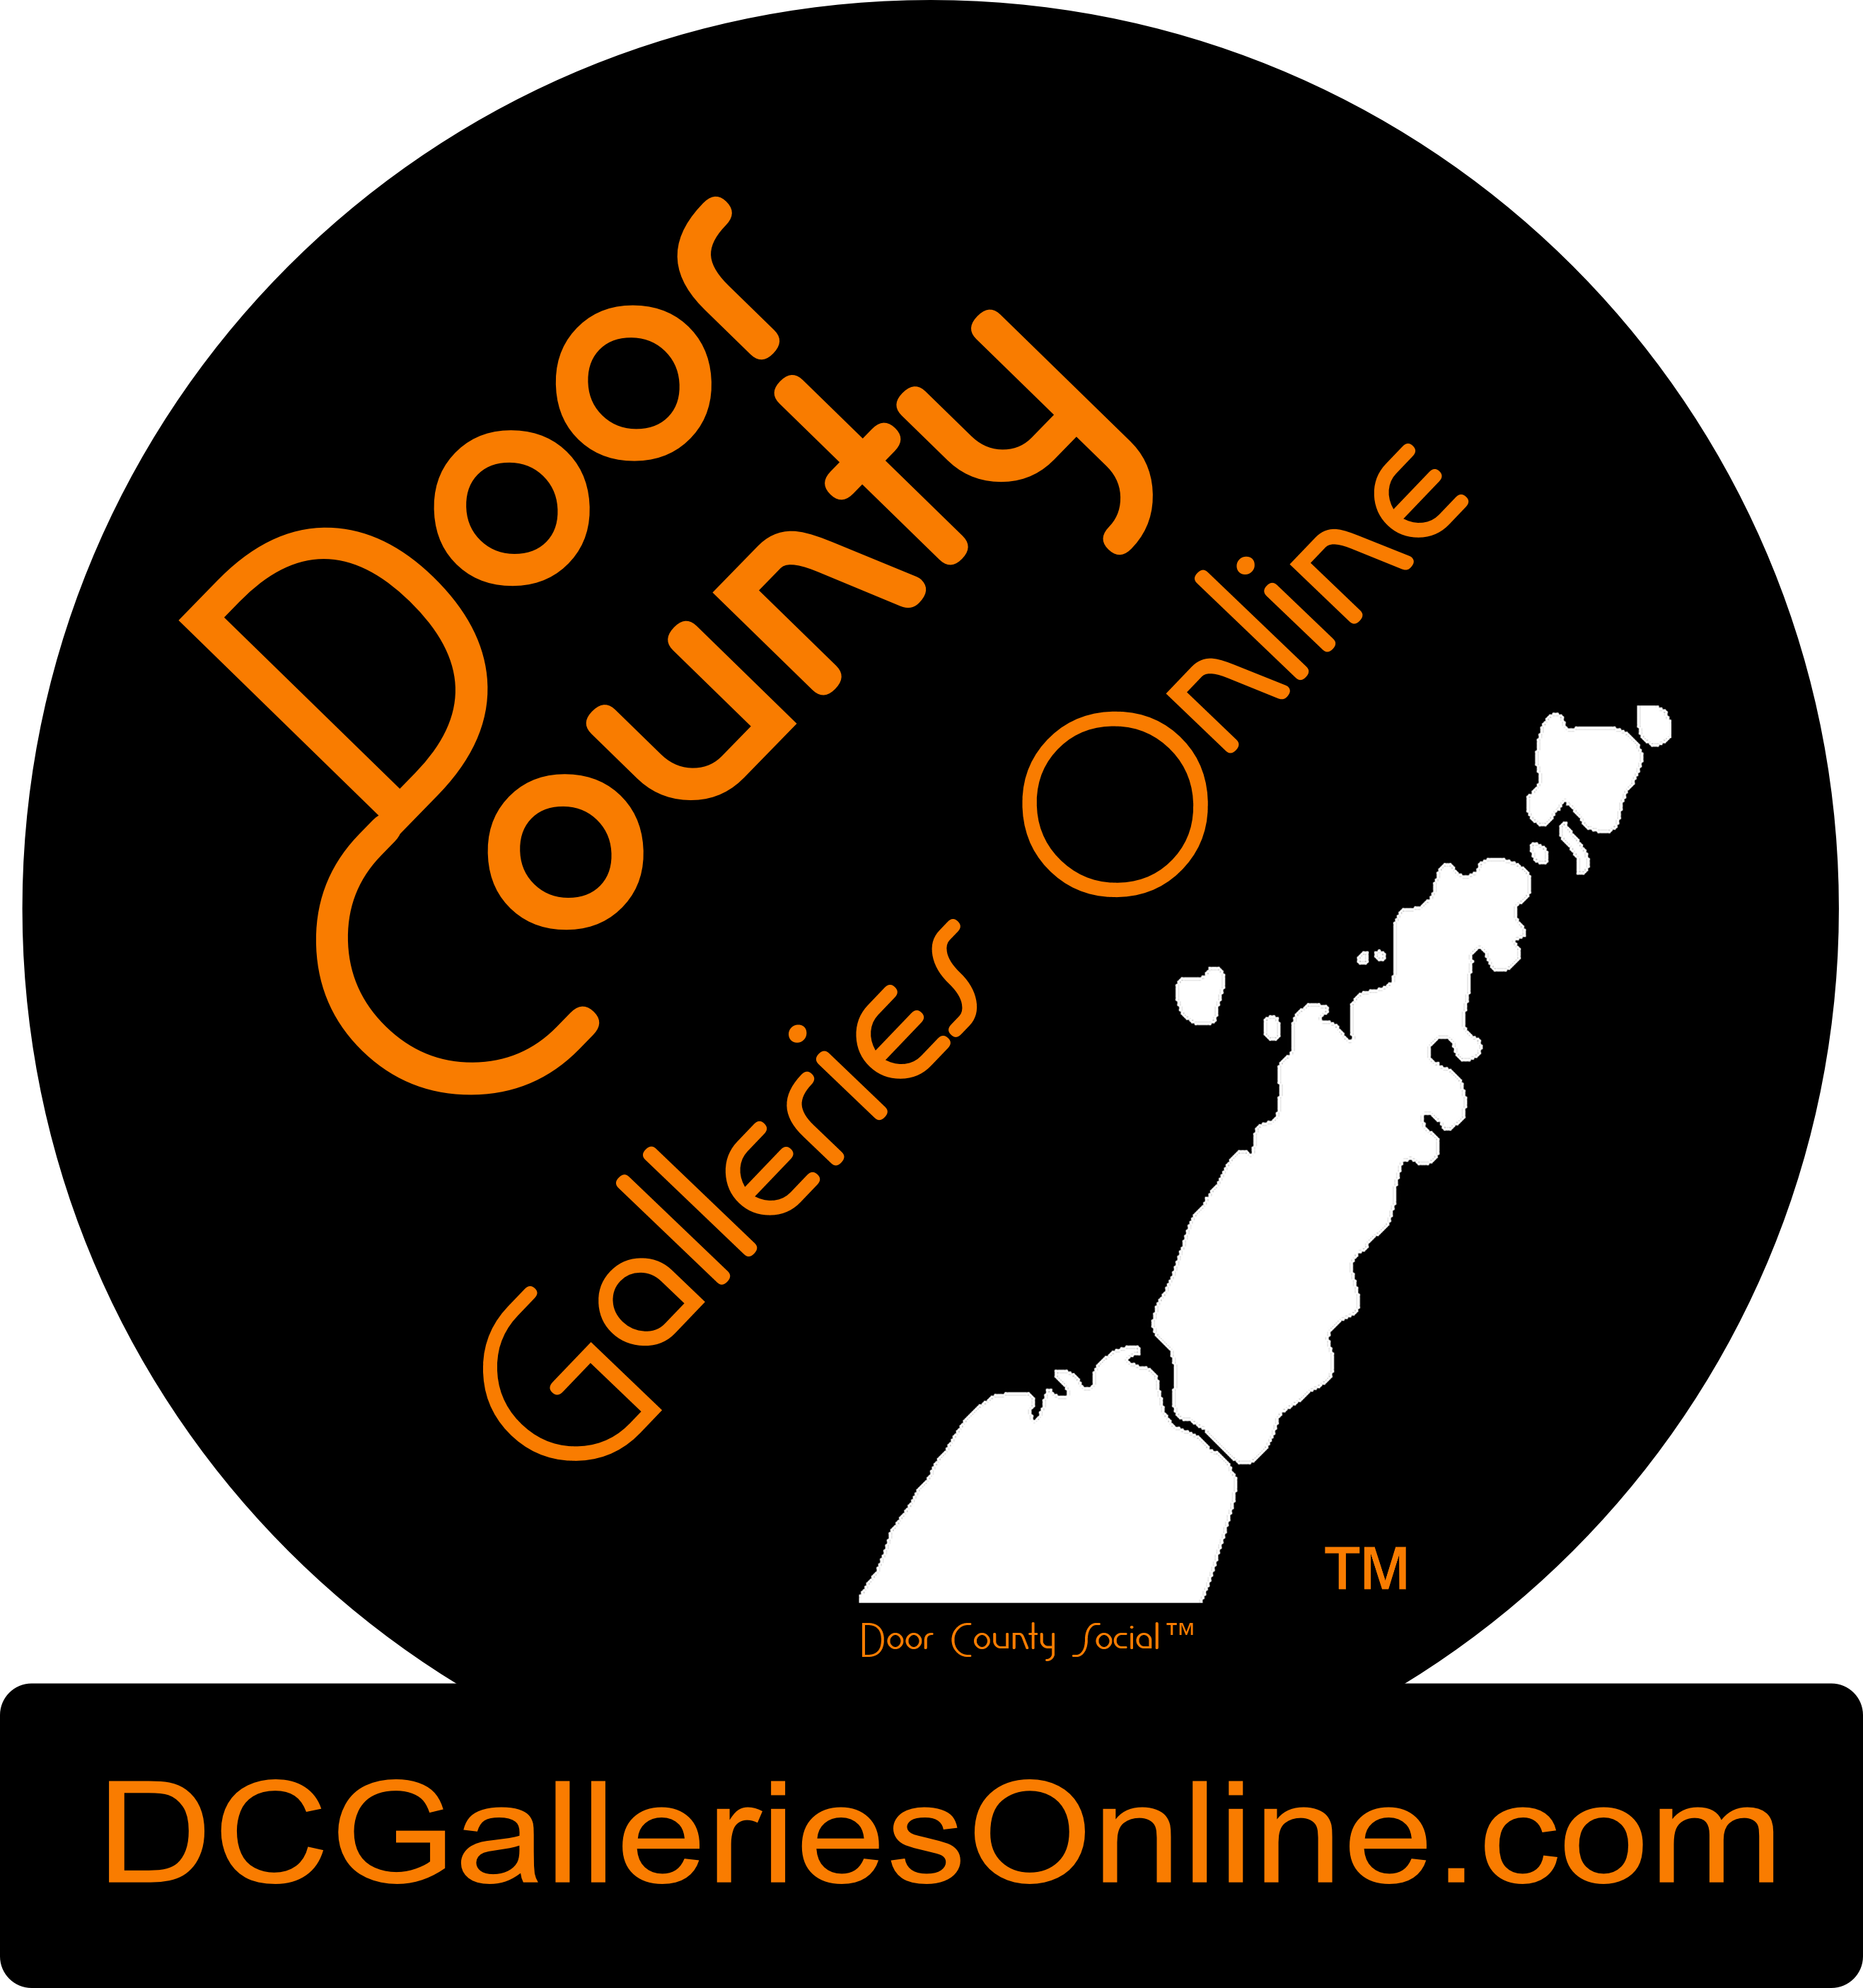 Door County Social Gallery Of Fine Art And Photography - Website